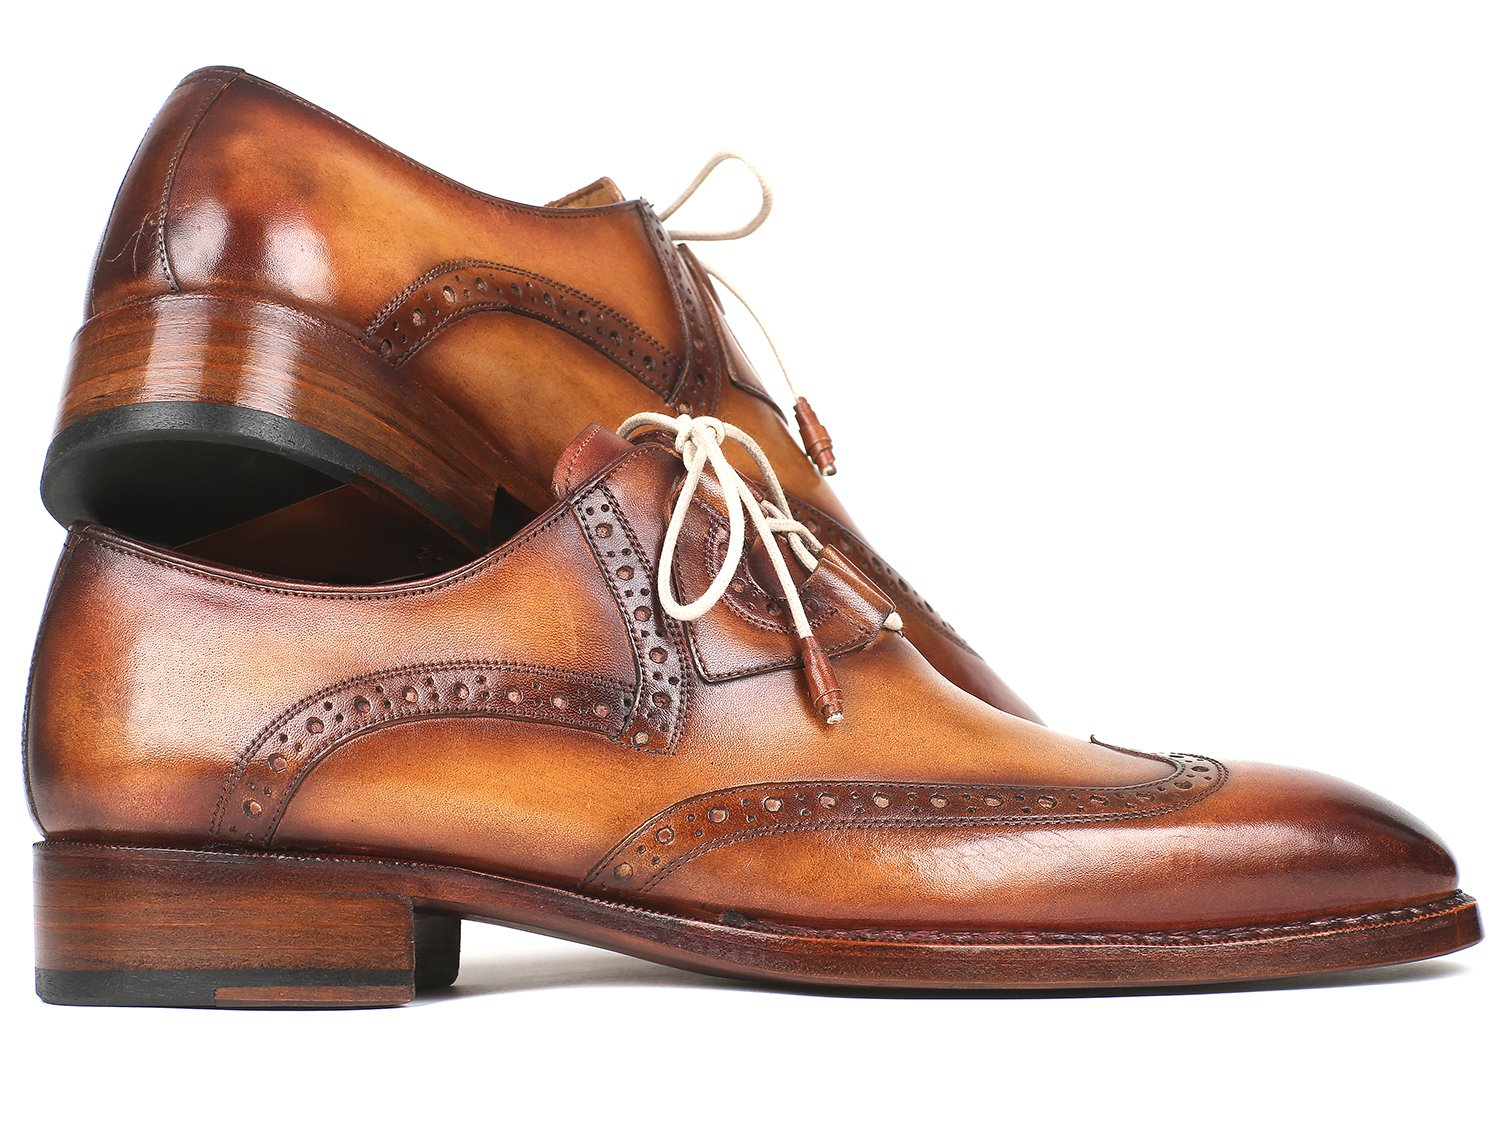 Paul Parkman Goodyear Welted Ghillie Lacing Wingtip Brogues - 2955-CML